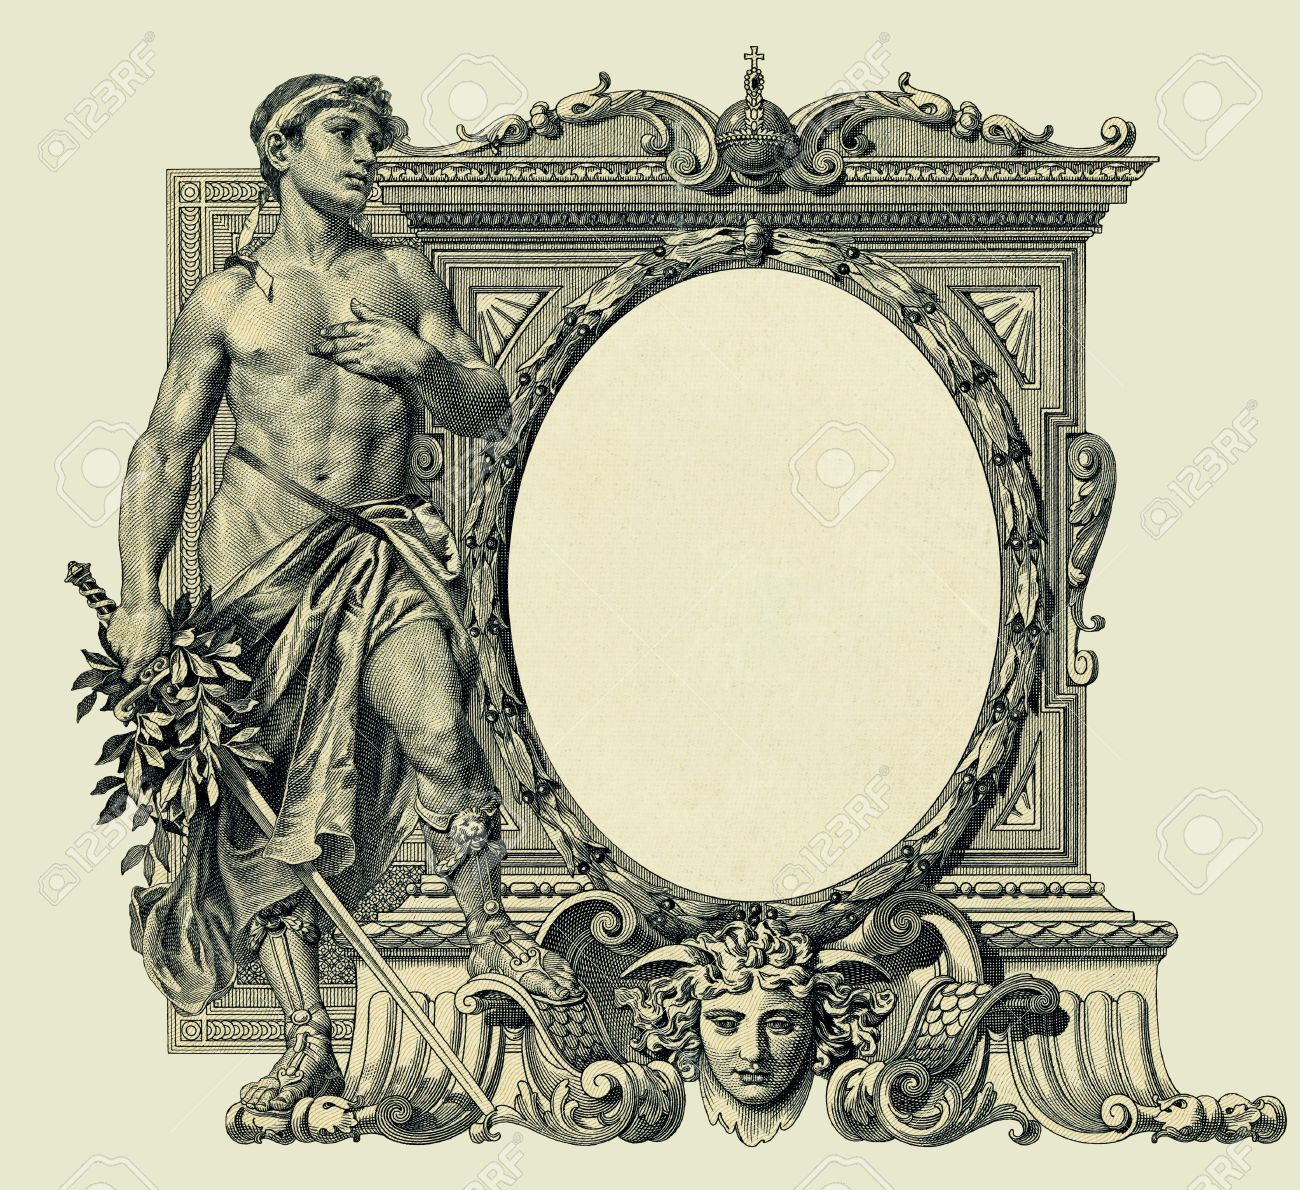 vintage oval frame based on 1910 engraving copyright expired old paper texture